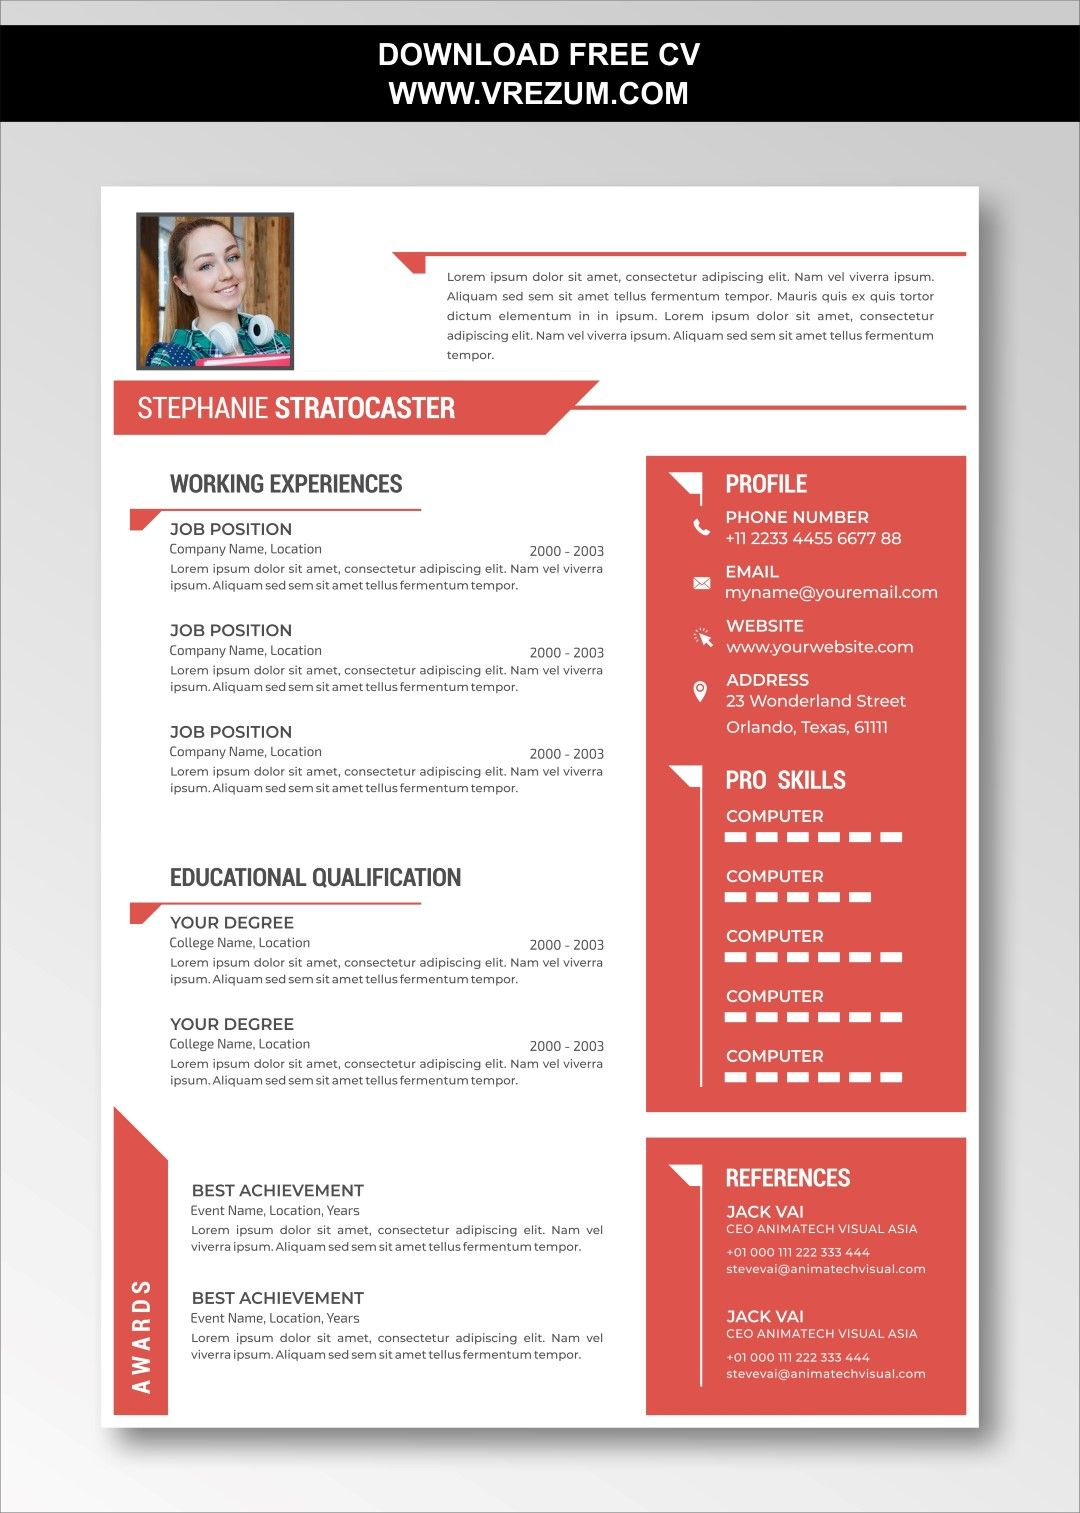 (EDITABLE) FREE CV Templates For English Teacher in 2020